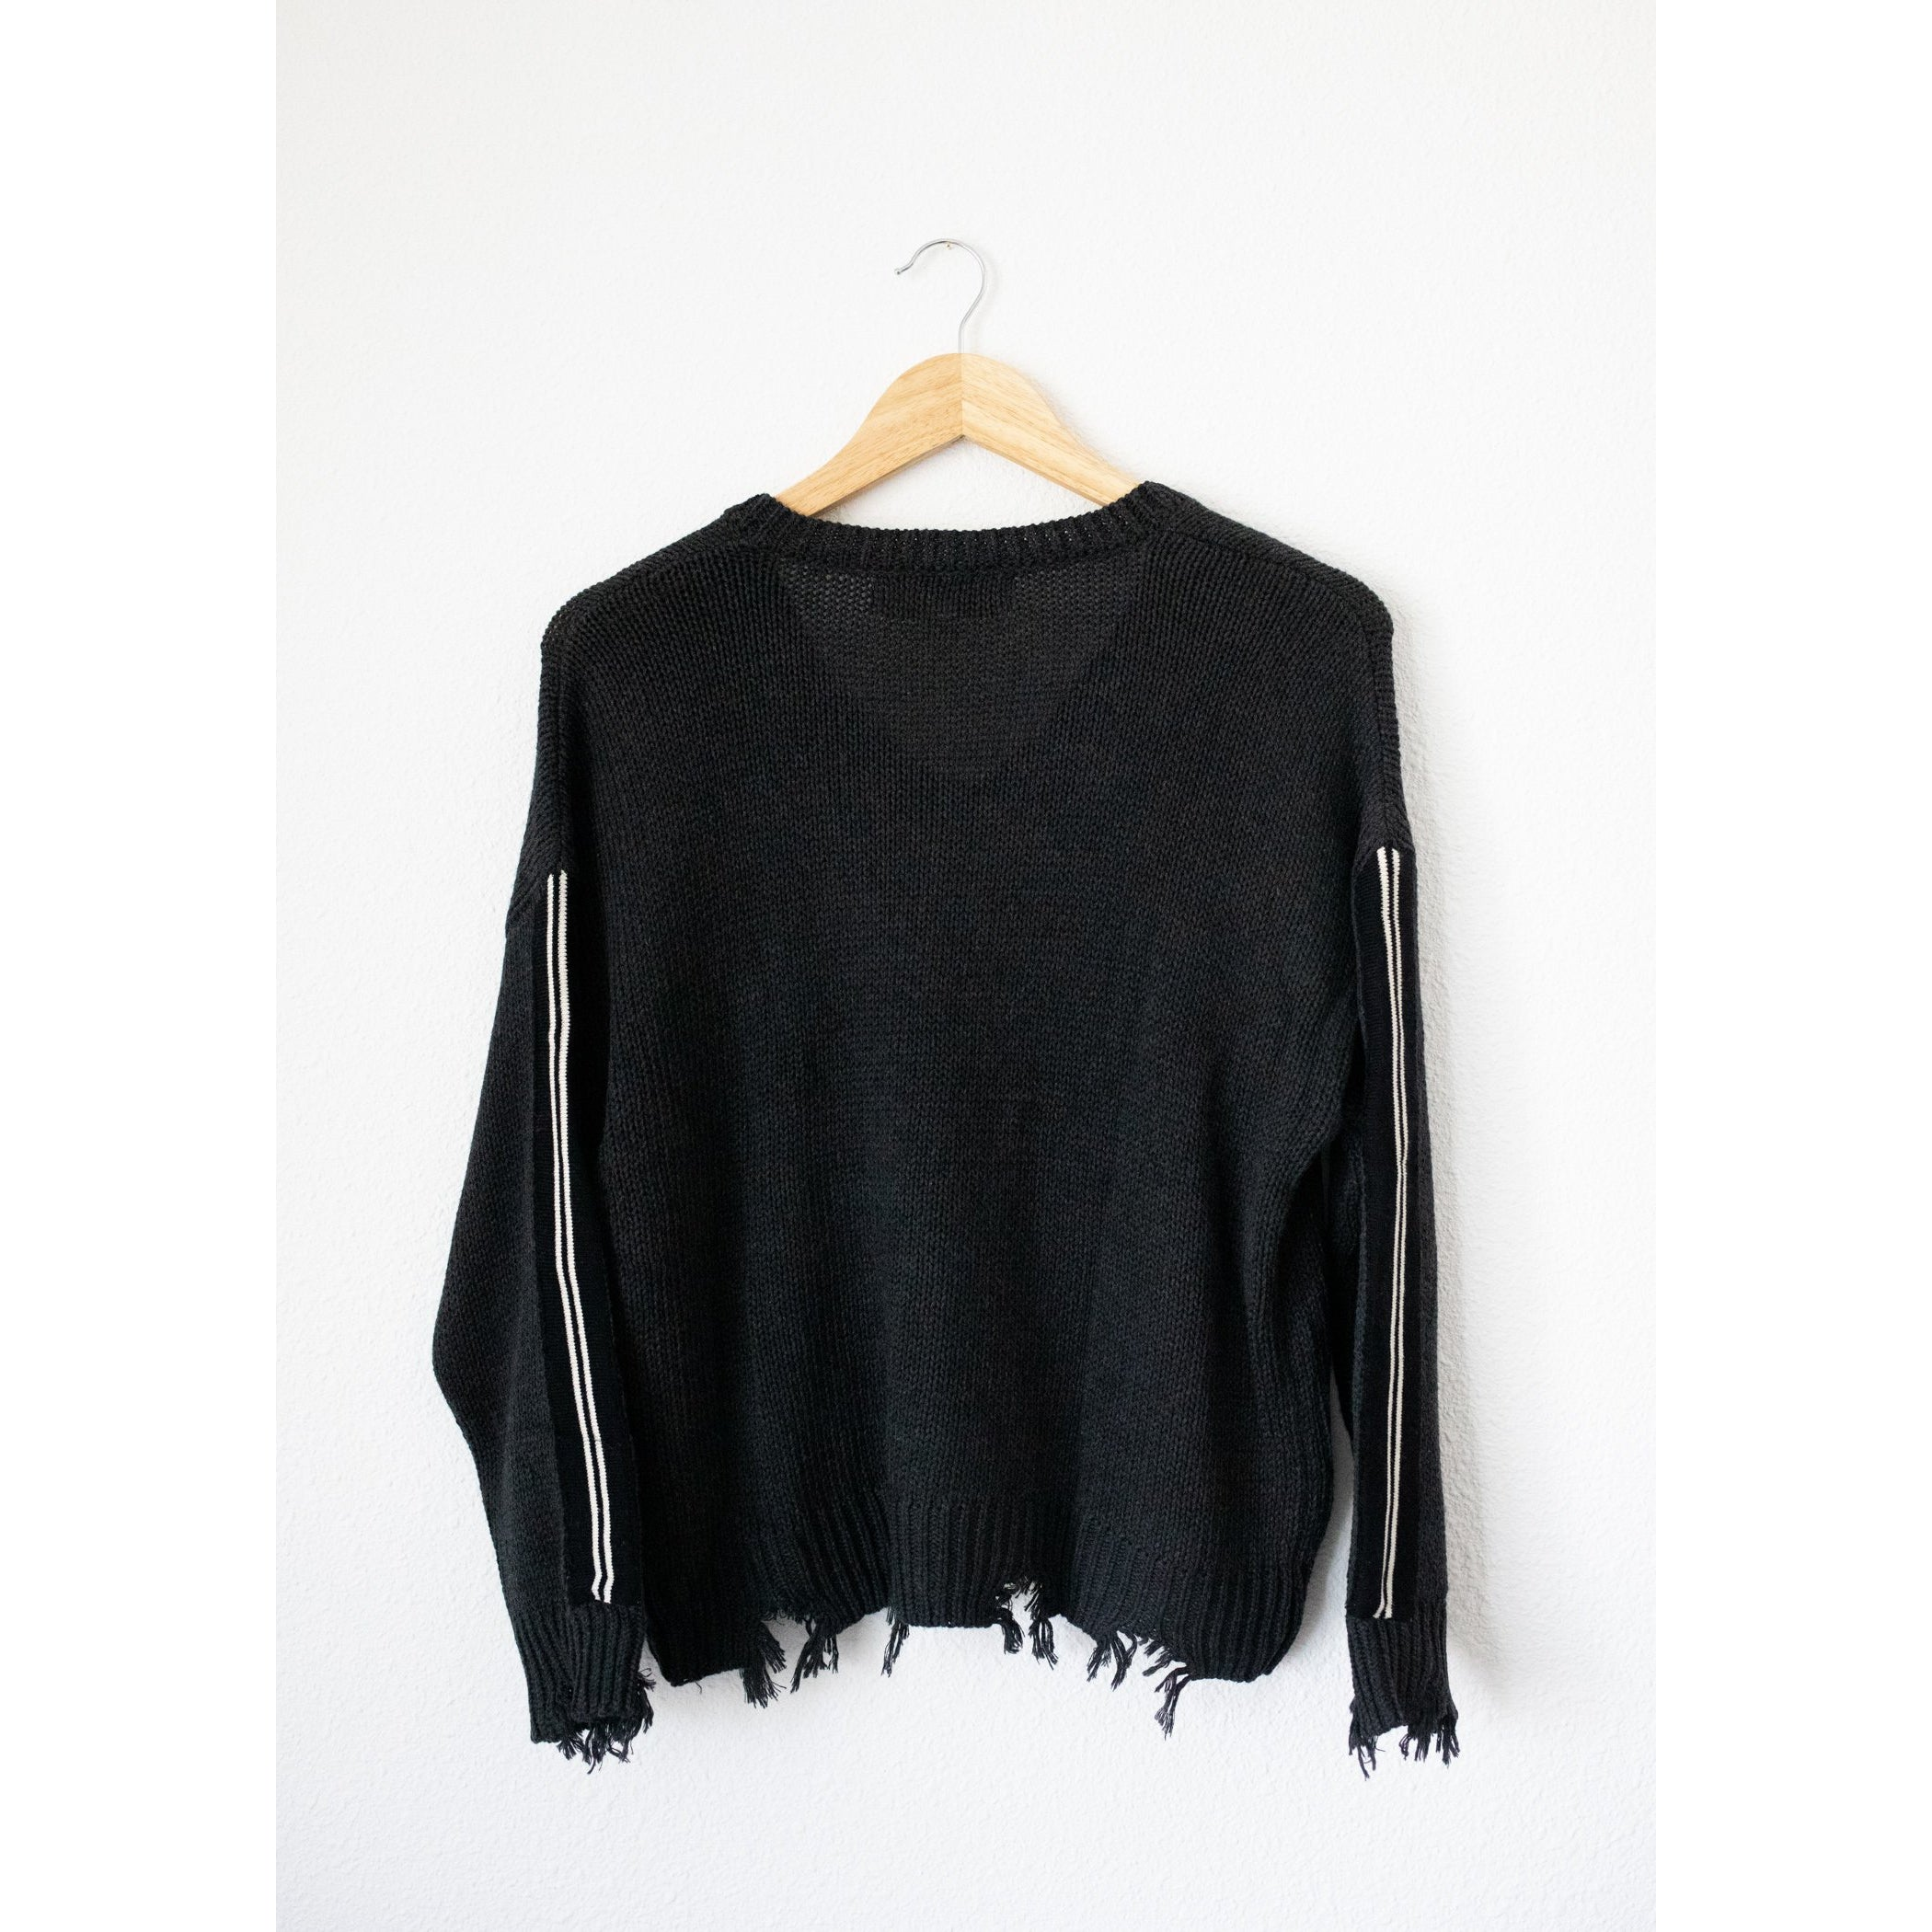 Chennile Knit Destroyed Sweater